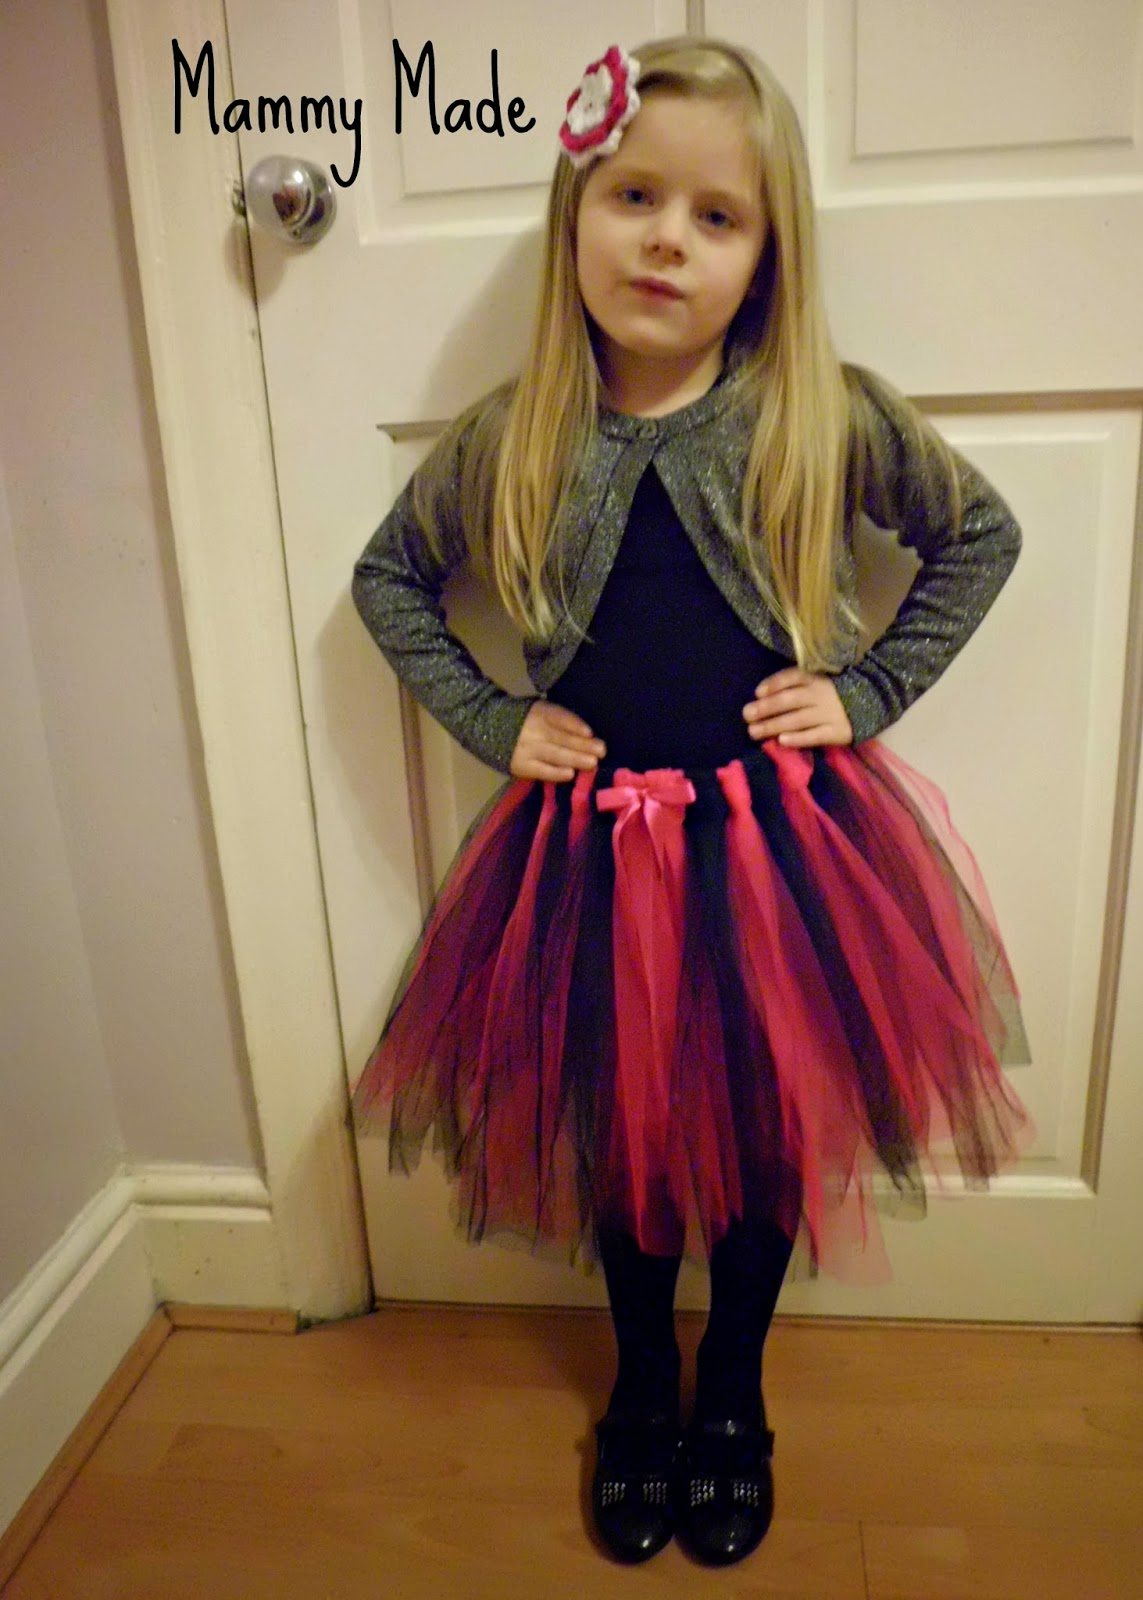 Little Girls Nails And Girls On Pinterest: Mammy Made: Little Girl Tutu